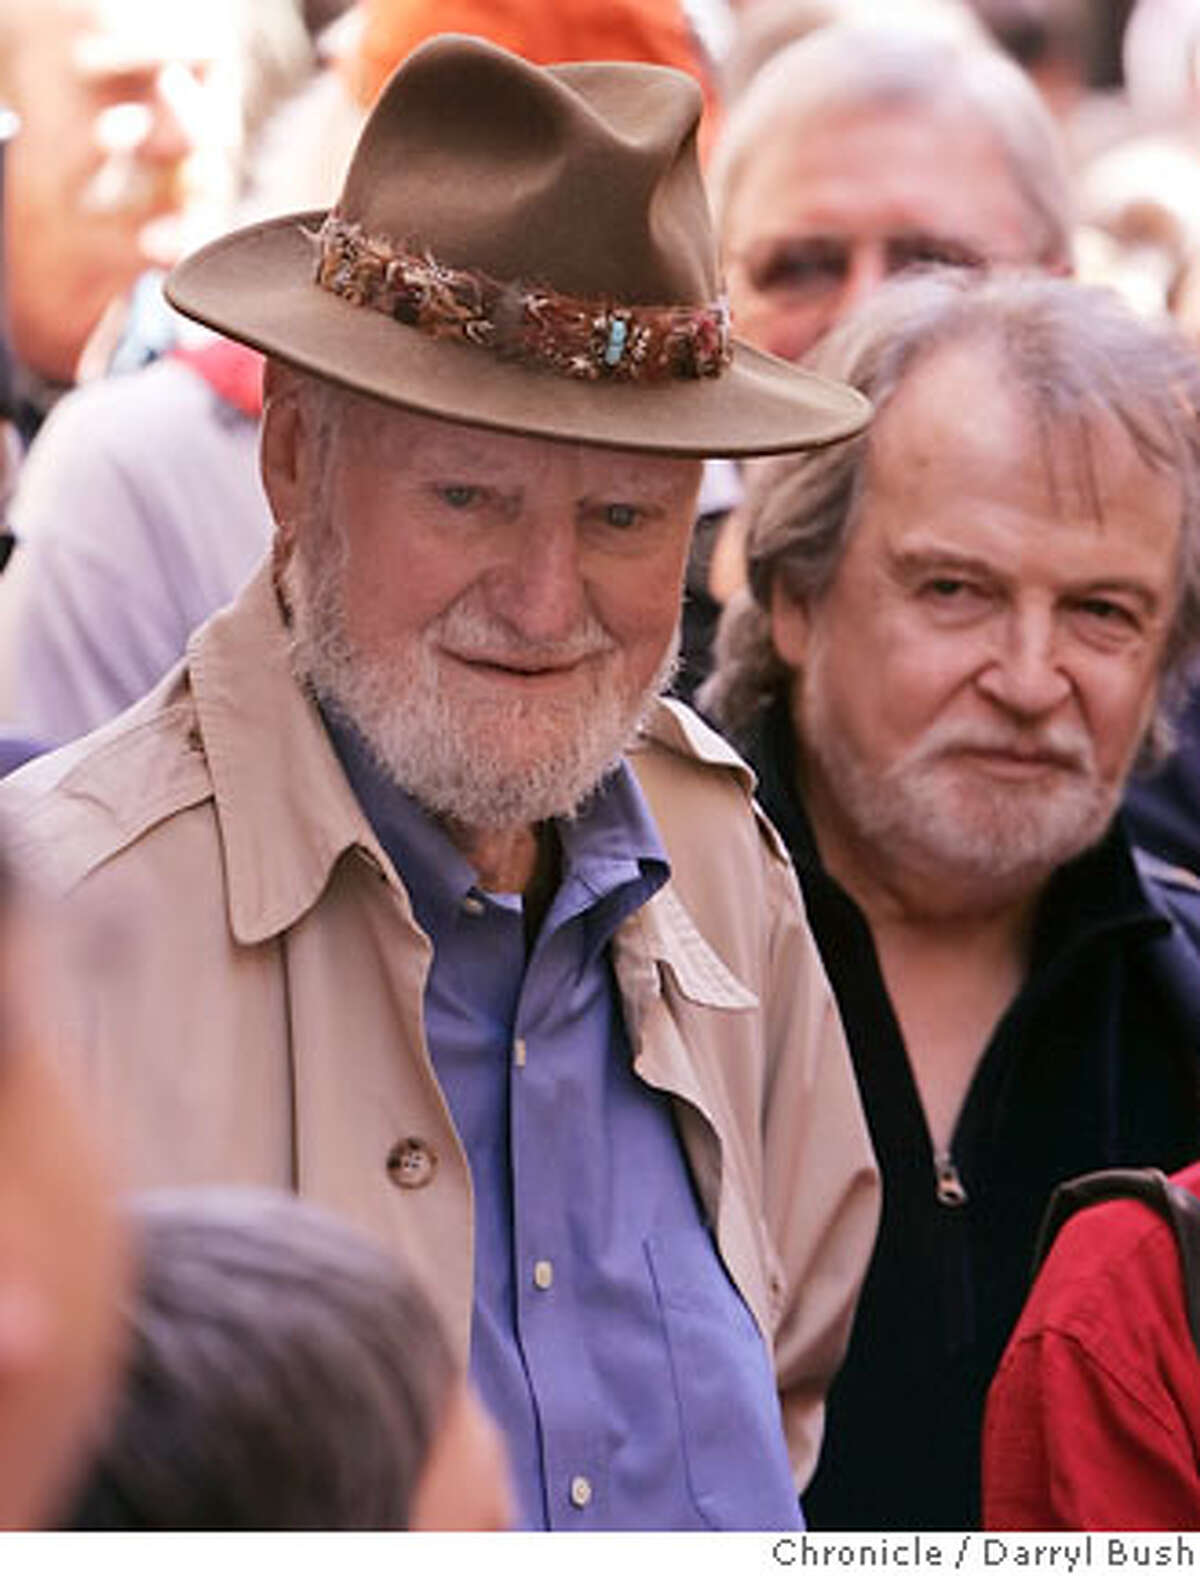 Poet Lawrence Ferlinghetti, owner of City Lights Bookstore, with friend, conductor George Cleve of Berkeley, back right, talks to many fans of his poetry as he attends with a crowd of hundreds at the Jack Kerouac Alley Dedication for the newly restored Jack Kerouac Alley between Grant and Coumbus in North Beach, which was attended by community leaders and local residents from North Beach and Chinatown and included entertainment and festivities from 12:00 to 4:00 p.m. in San Francisco, CA, on Saturday, March, 31, 2007. photo taken: 3/31/07 Darryl Bush / The Chronicle ** Lawrence Ferlinghetti (cq)